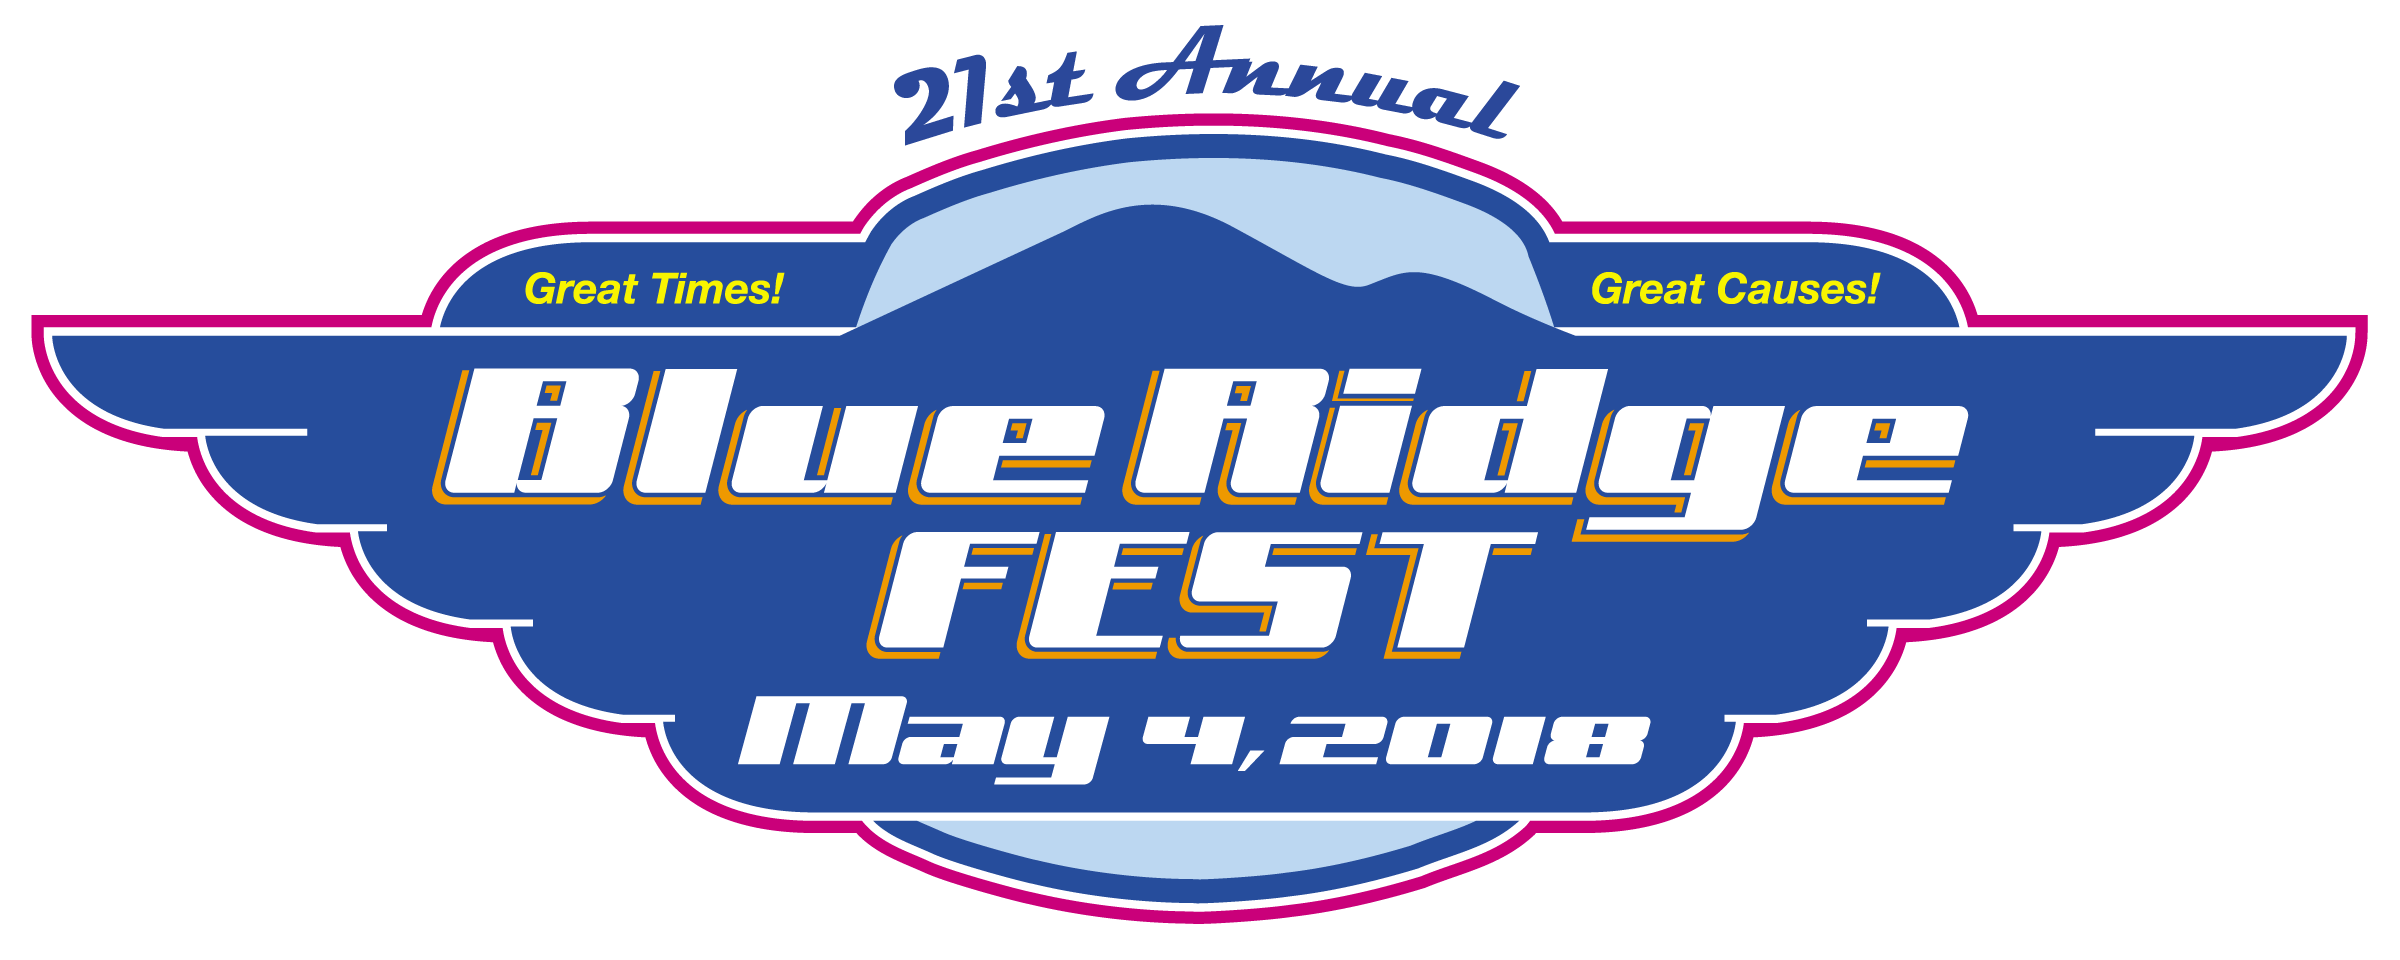 Blue Ridge Electric Cooperative Announces Record Breaking Funds Raised From 21st Annual Blue Ridge Fest